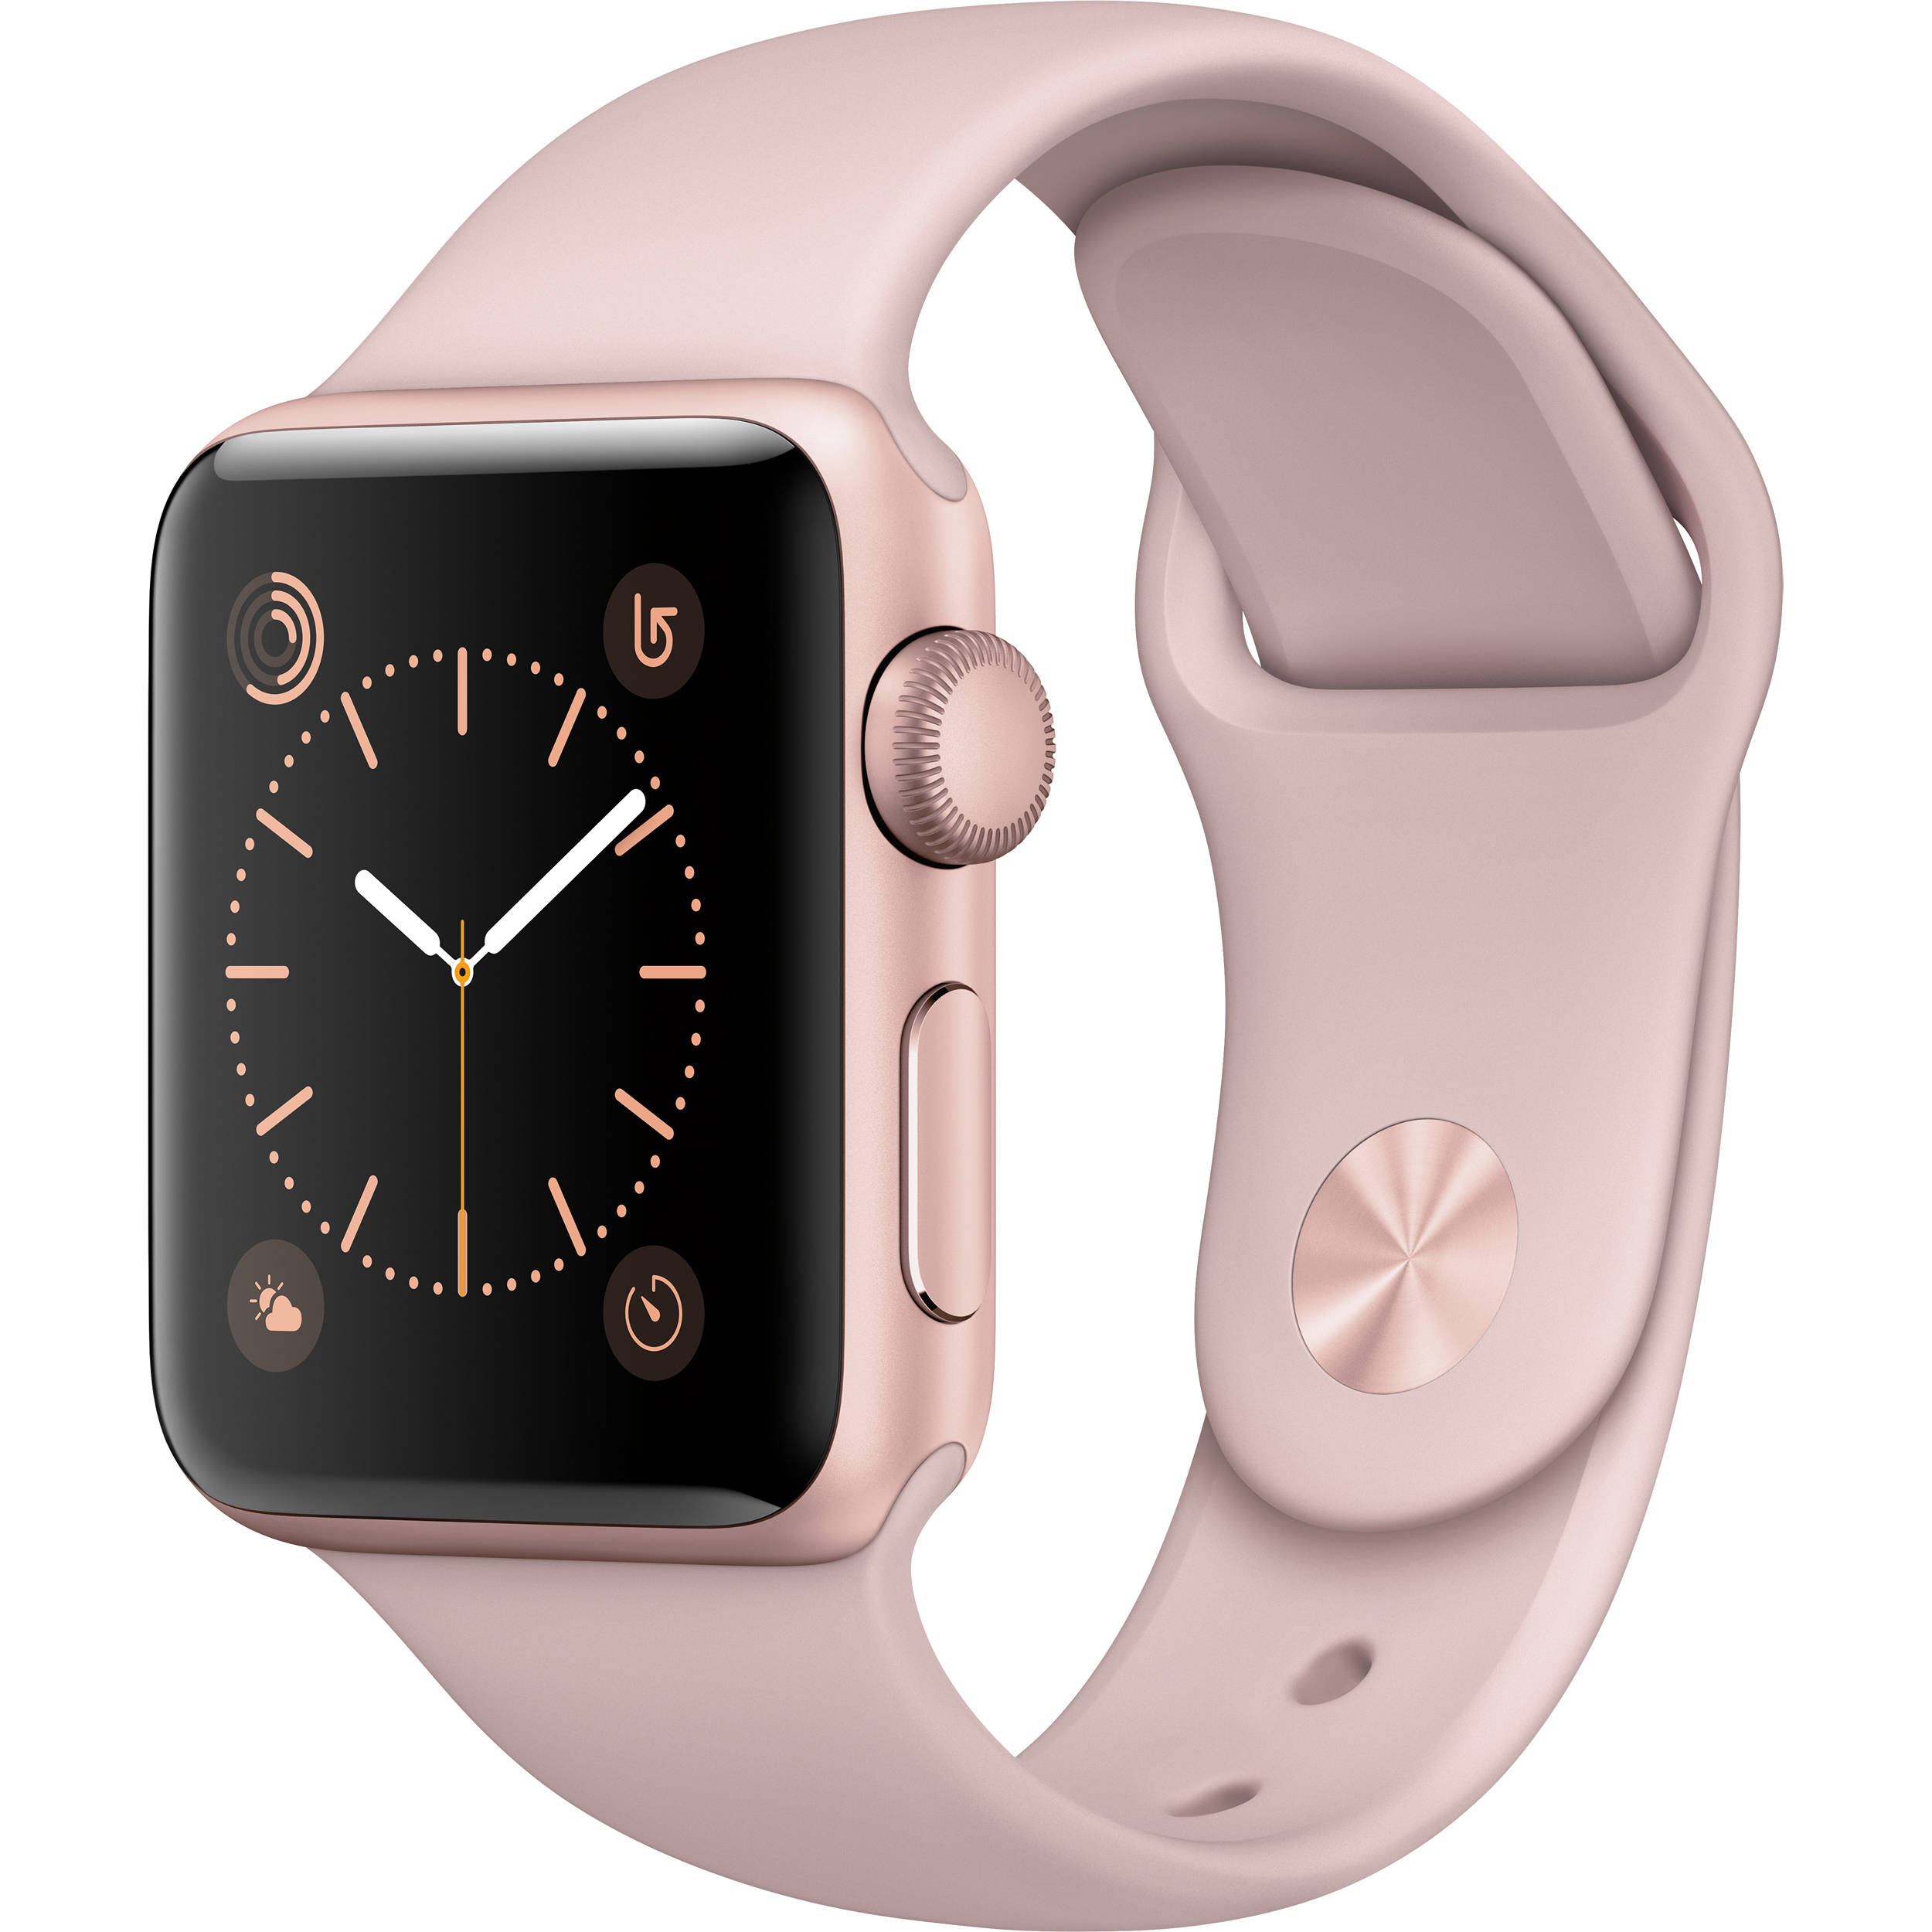 Apple watch series 2 38mm ALUMINUM SPORT BAND (Rose Gold Aluminum Case with Pink Sand Sport Band) by